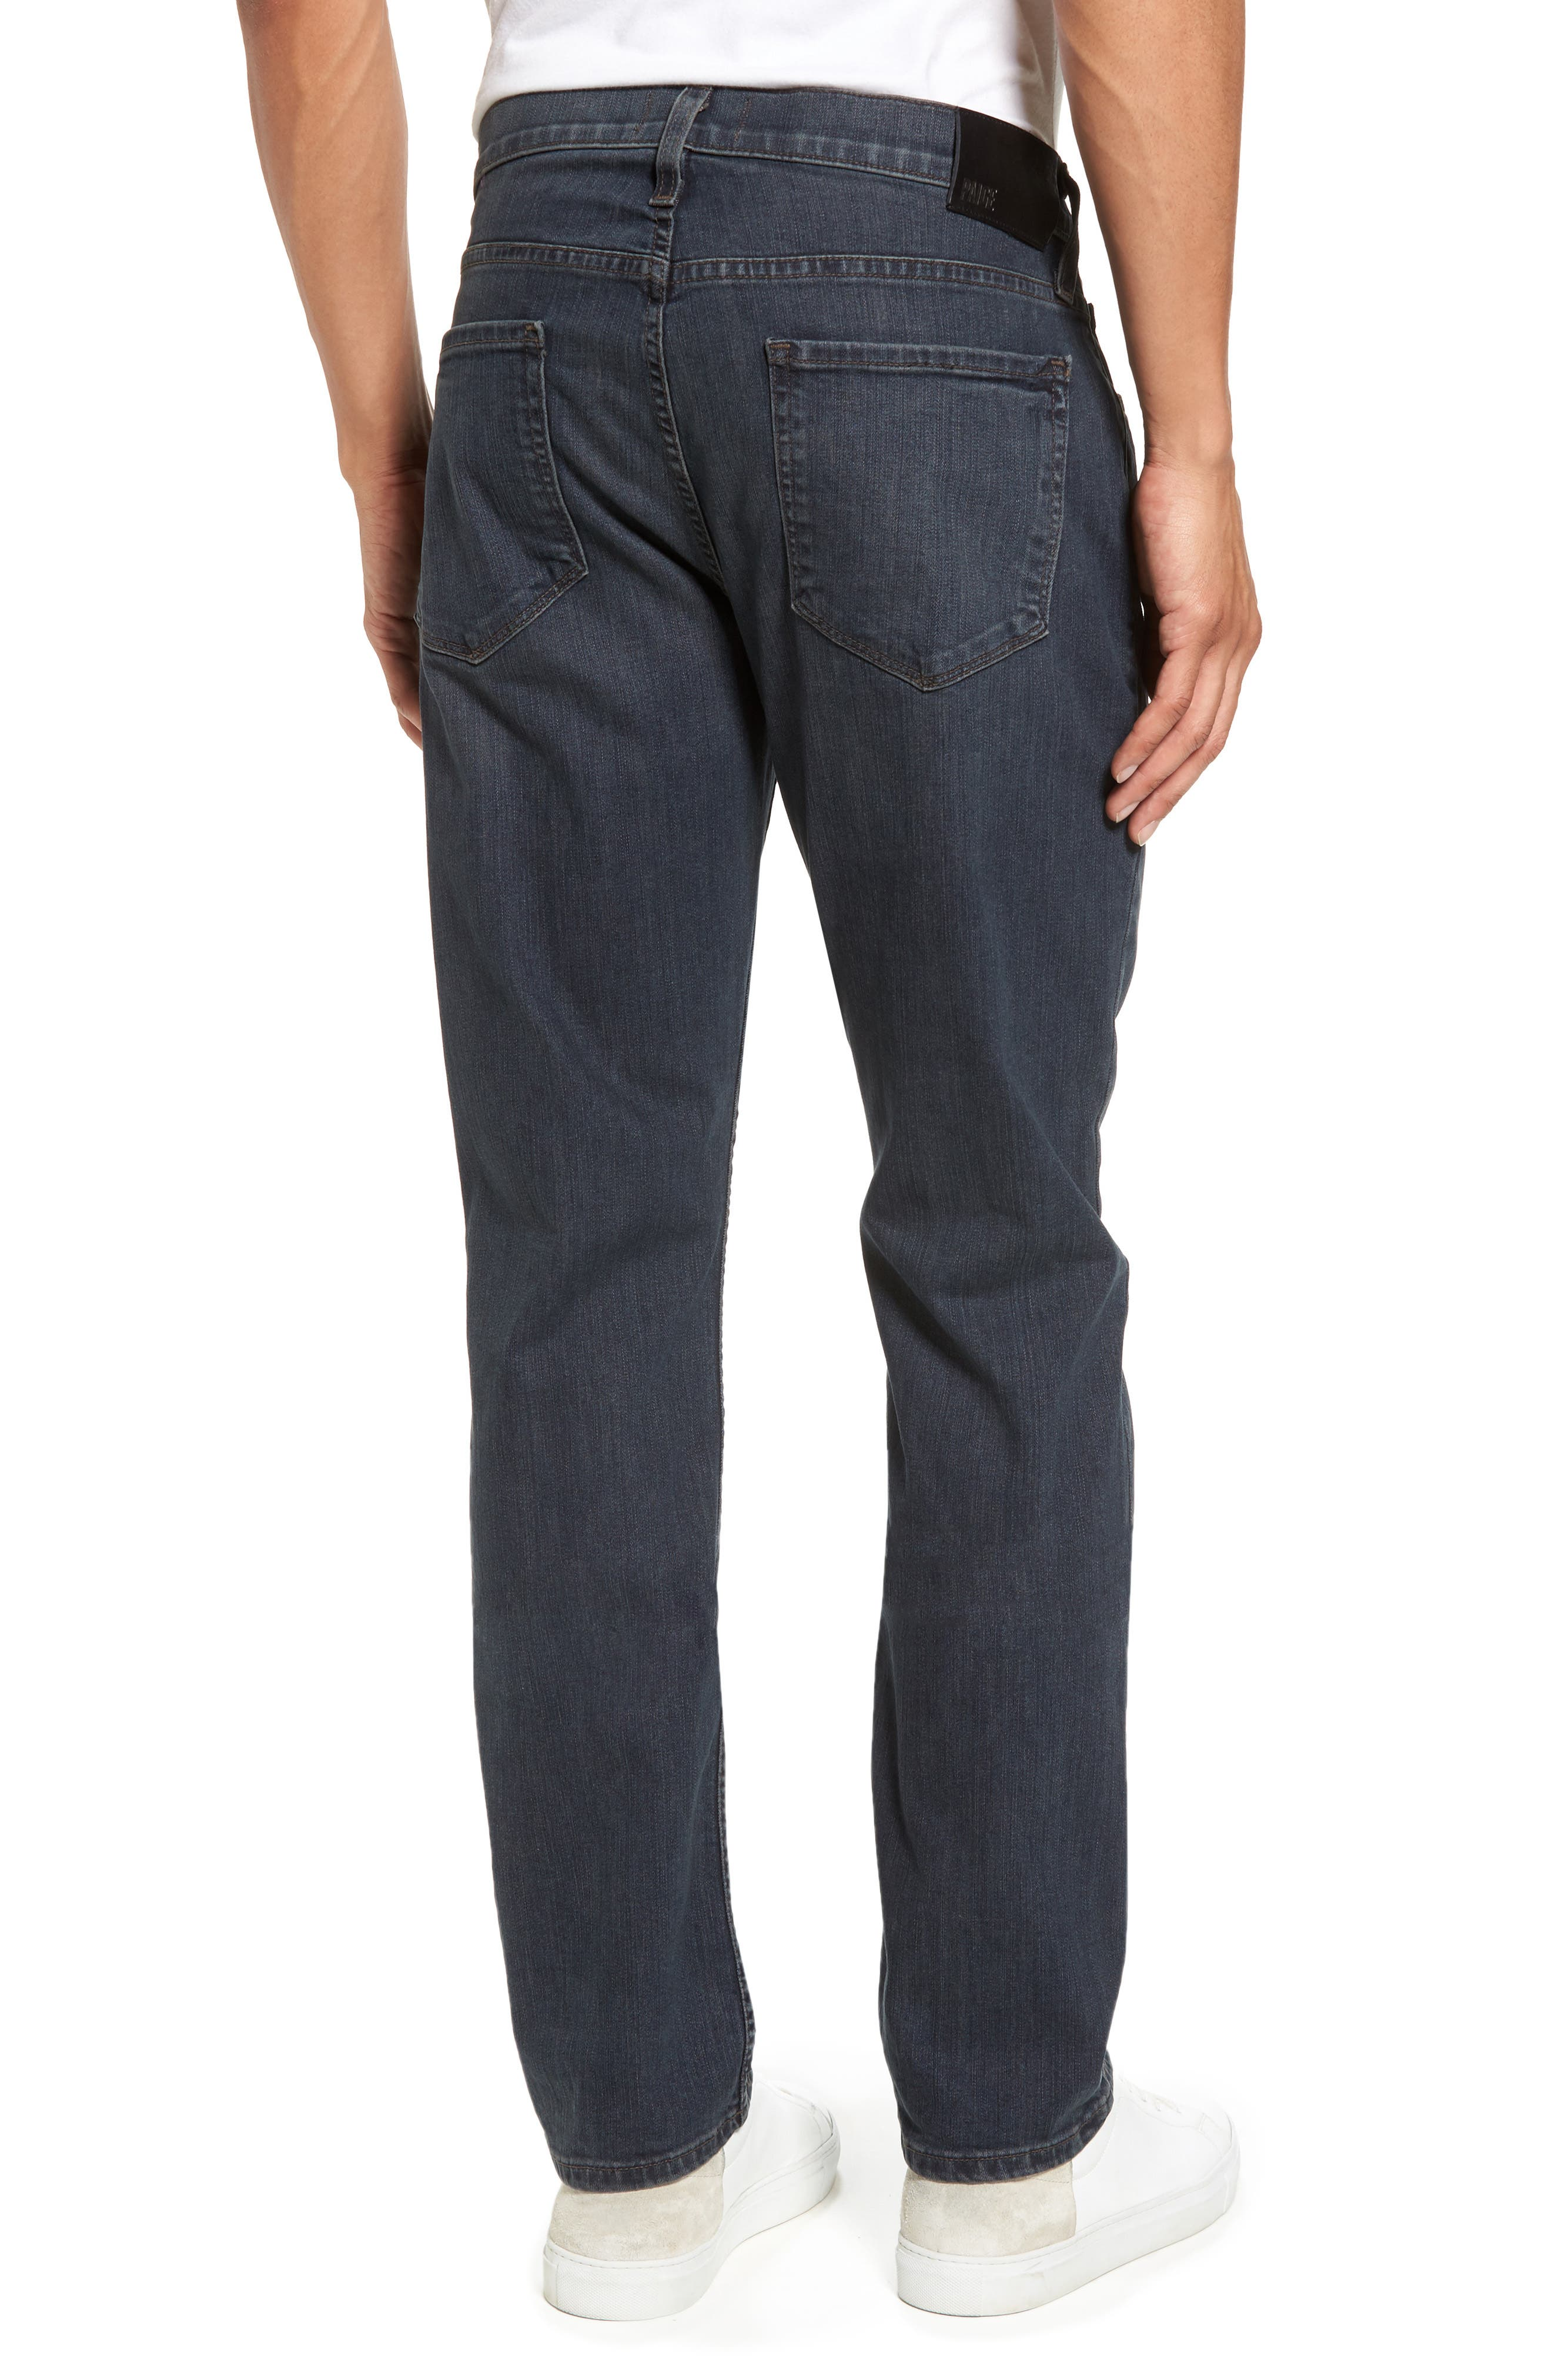 Legacy - Federal Slim Straight Leg Jeans,                             Alternate thumbnail 2, color,                             Triton